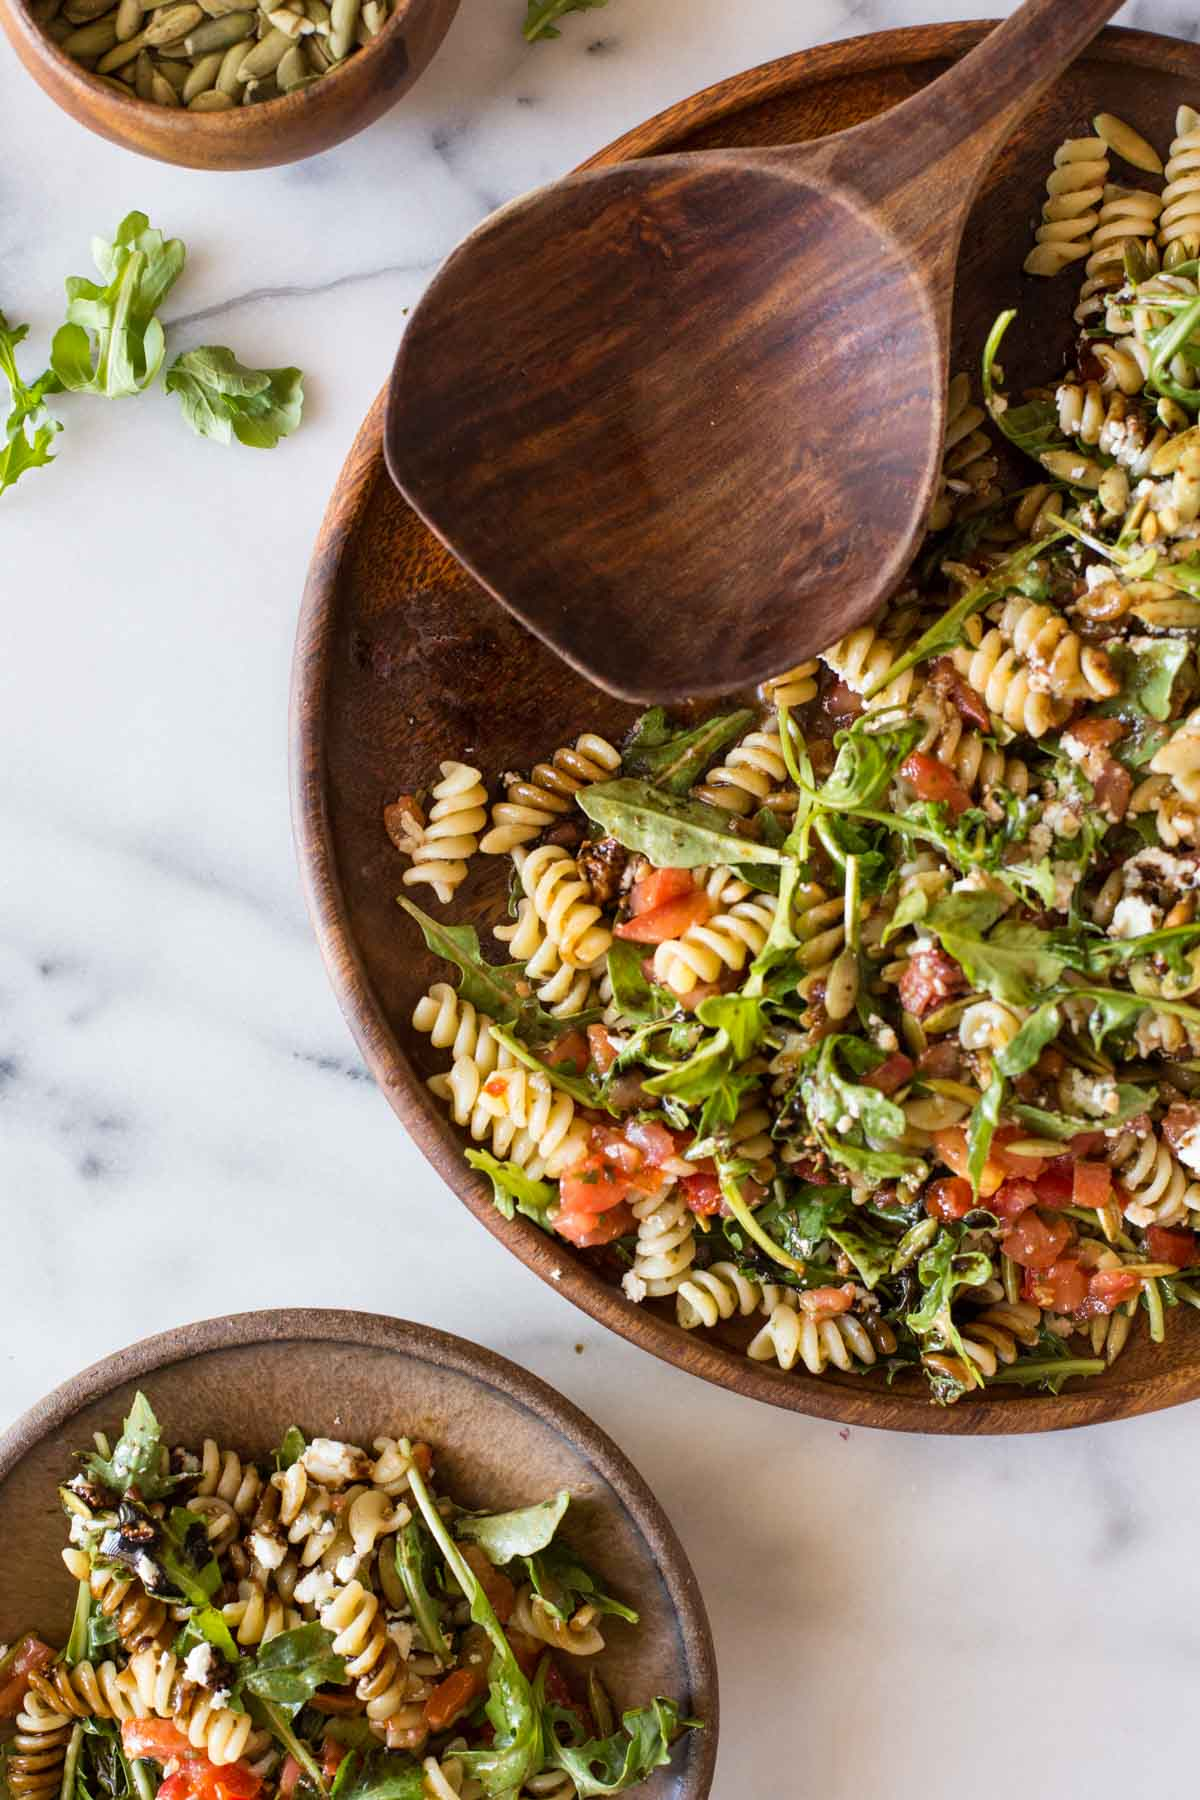 Bruschetta Pasta Salad on a wood serving platter with a wooden spoon, sitting next to a plate of Bruschetta Pasta Salad and a small bowl of pepitas.